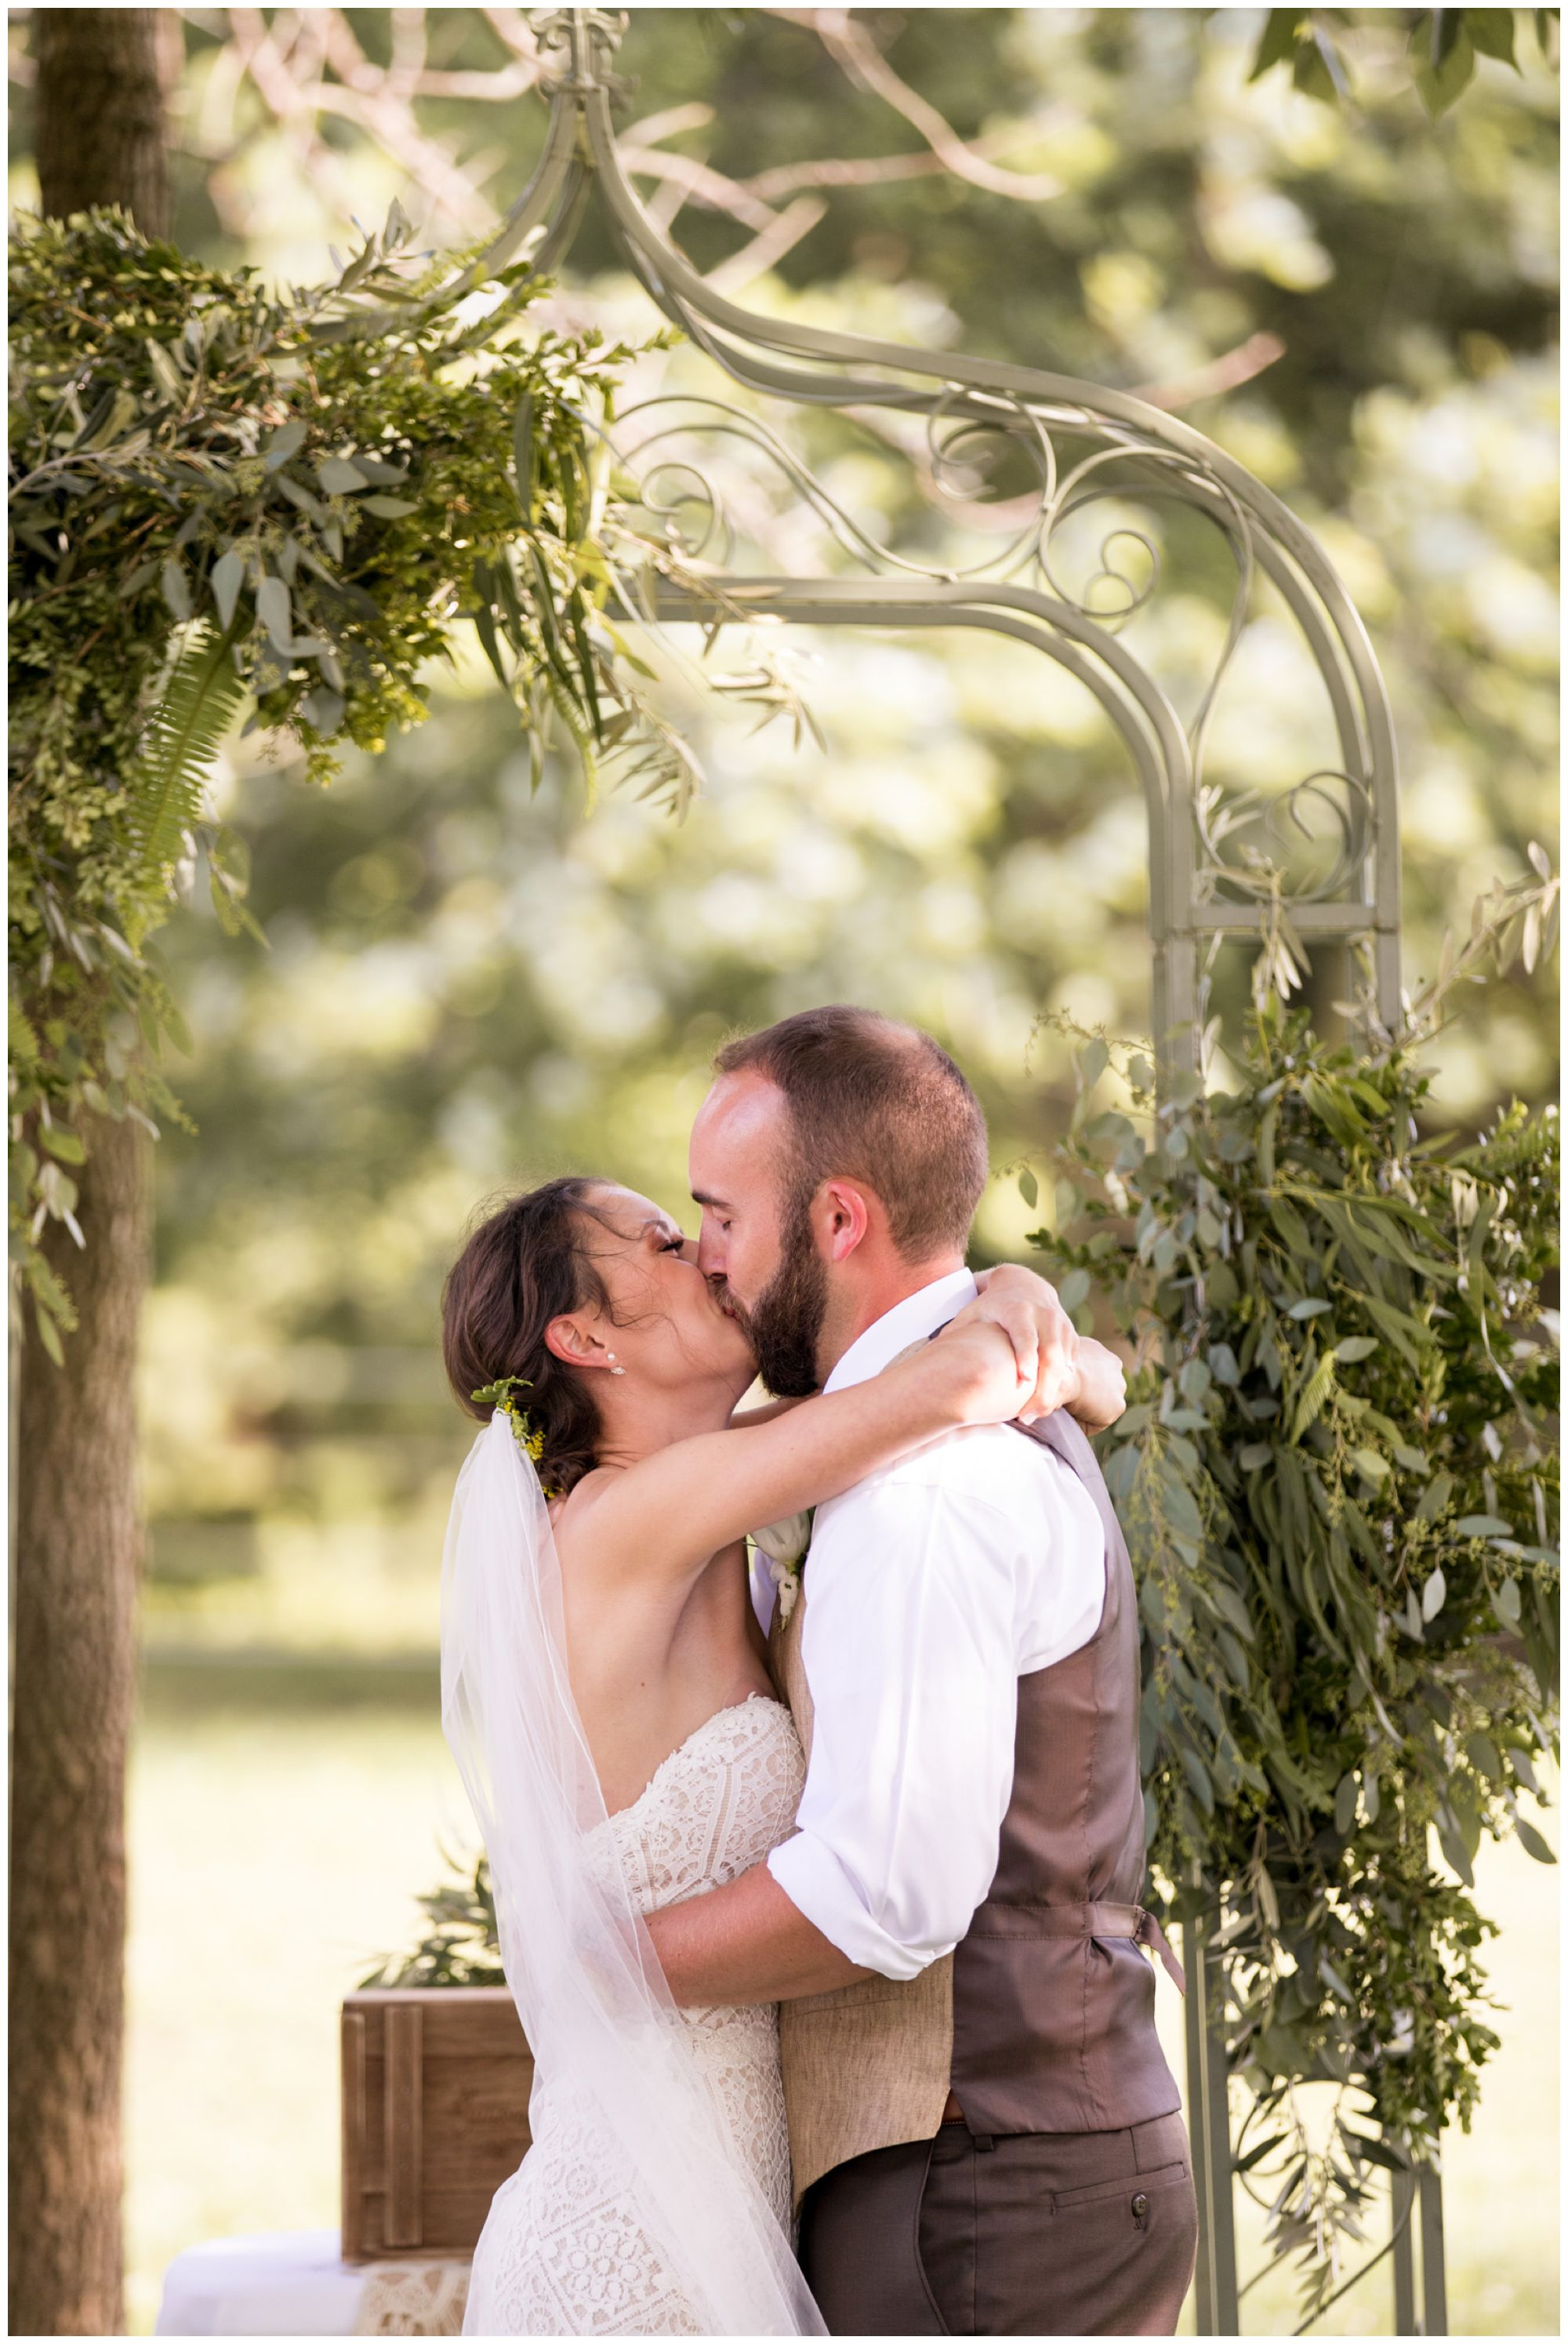 bride and groom first kiss as husband and wife at Indianapolis wedding ceremony